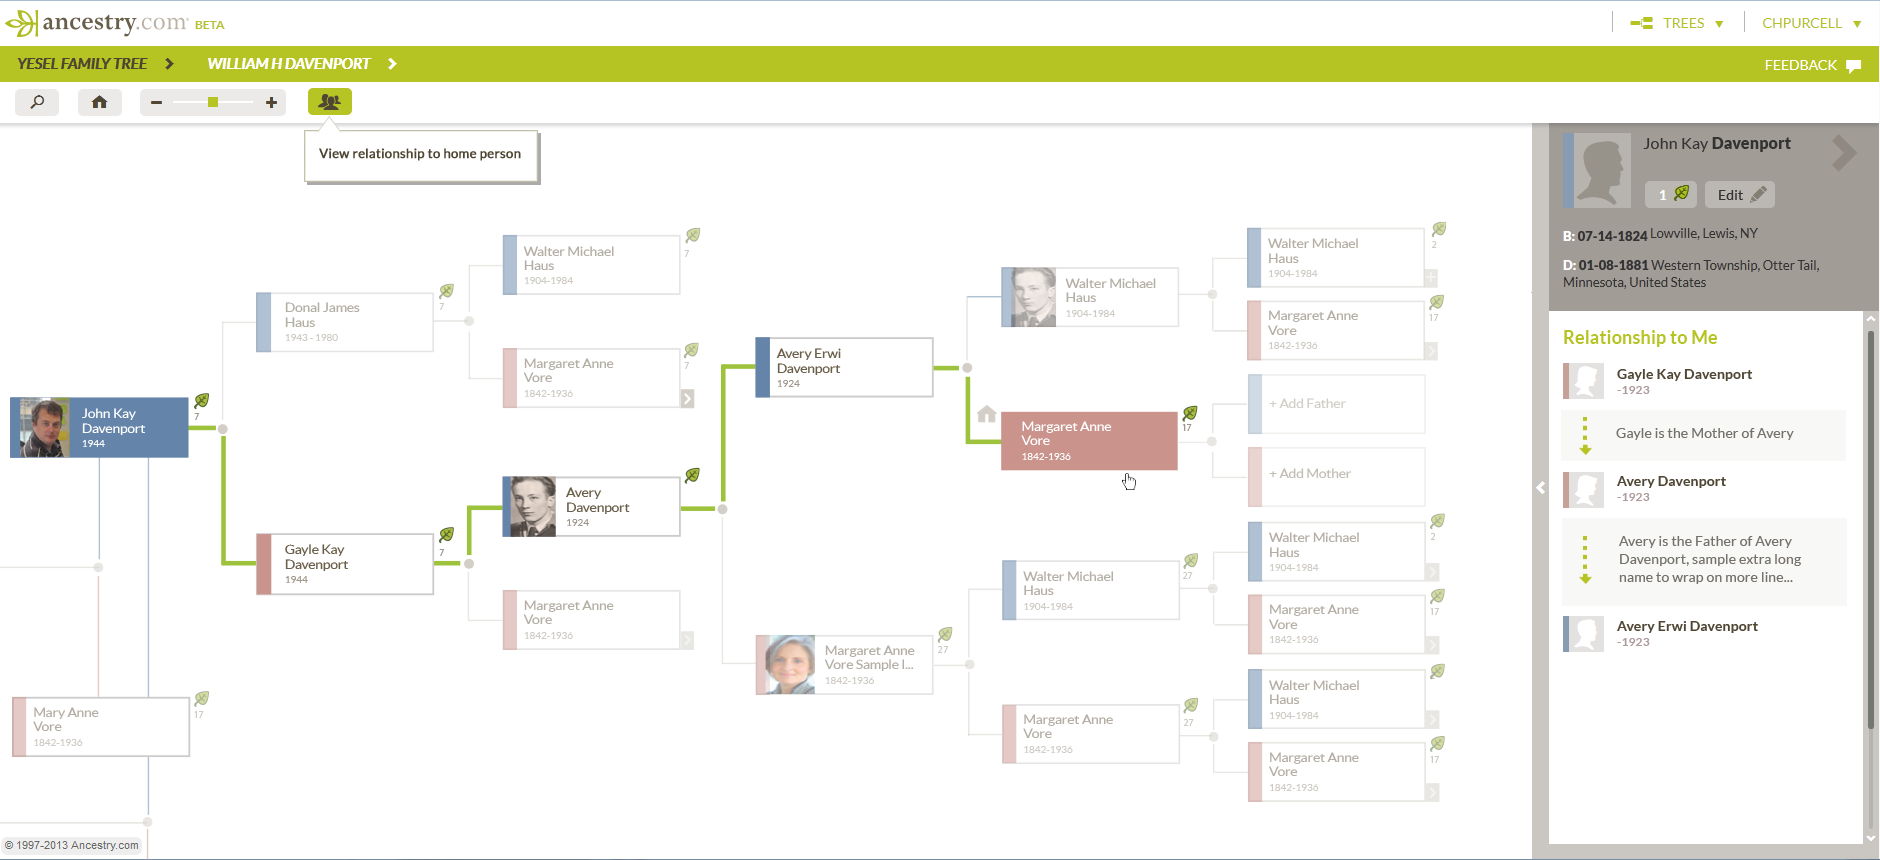 Ancestry – Relation to Me Viewer